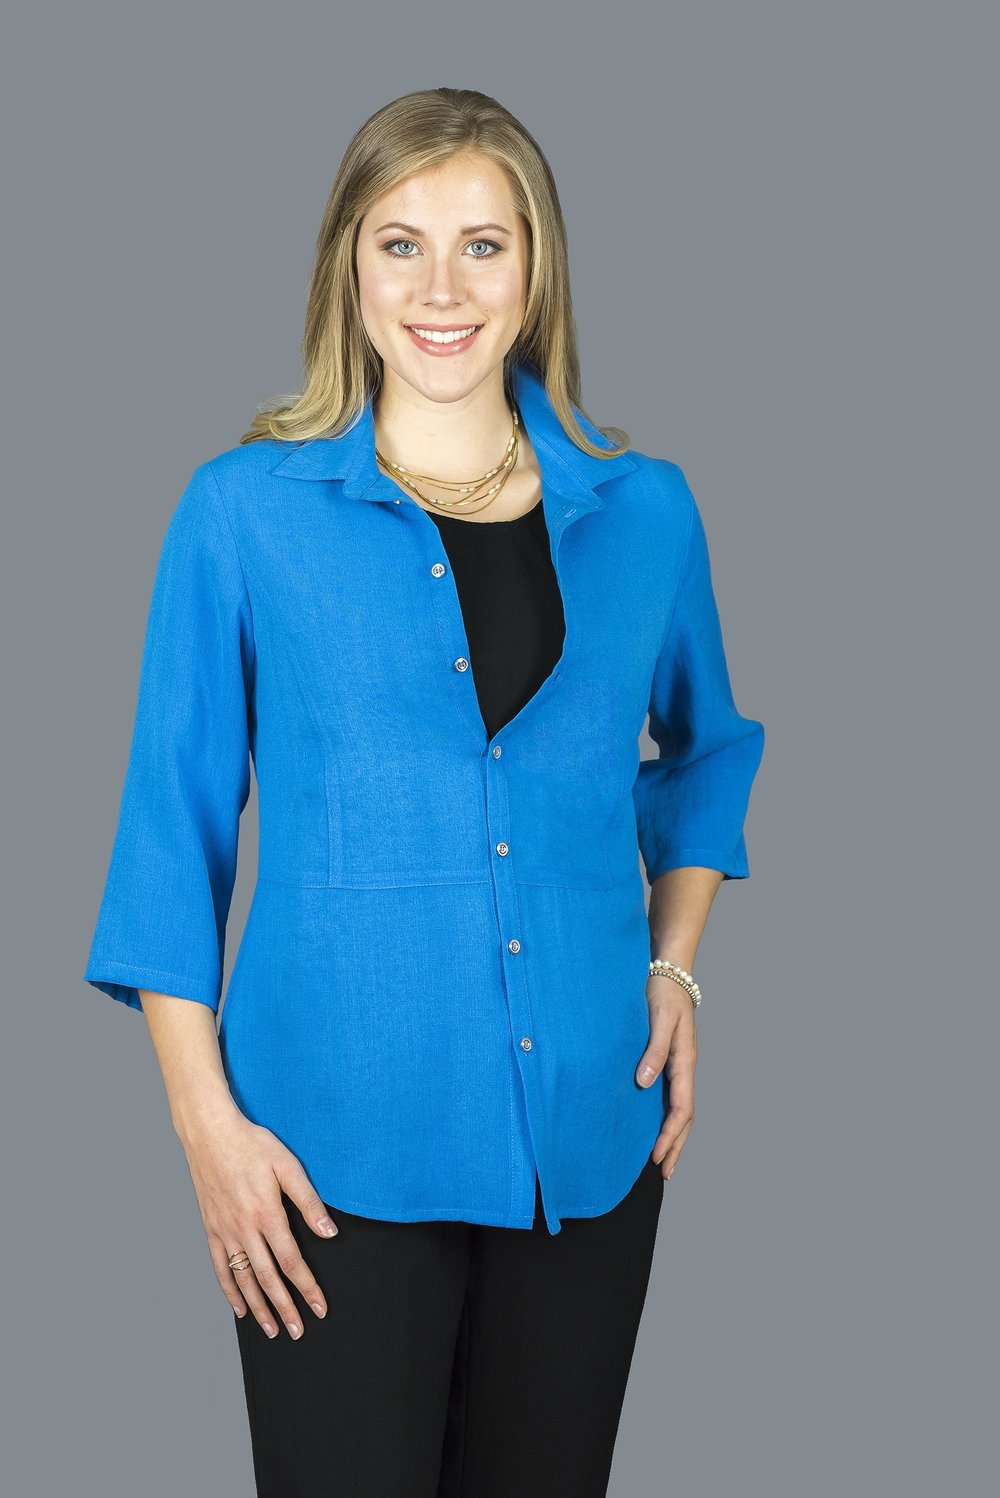 AA207 - Shirt with Banded Back    CL3094 - Aruba